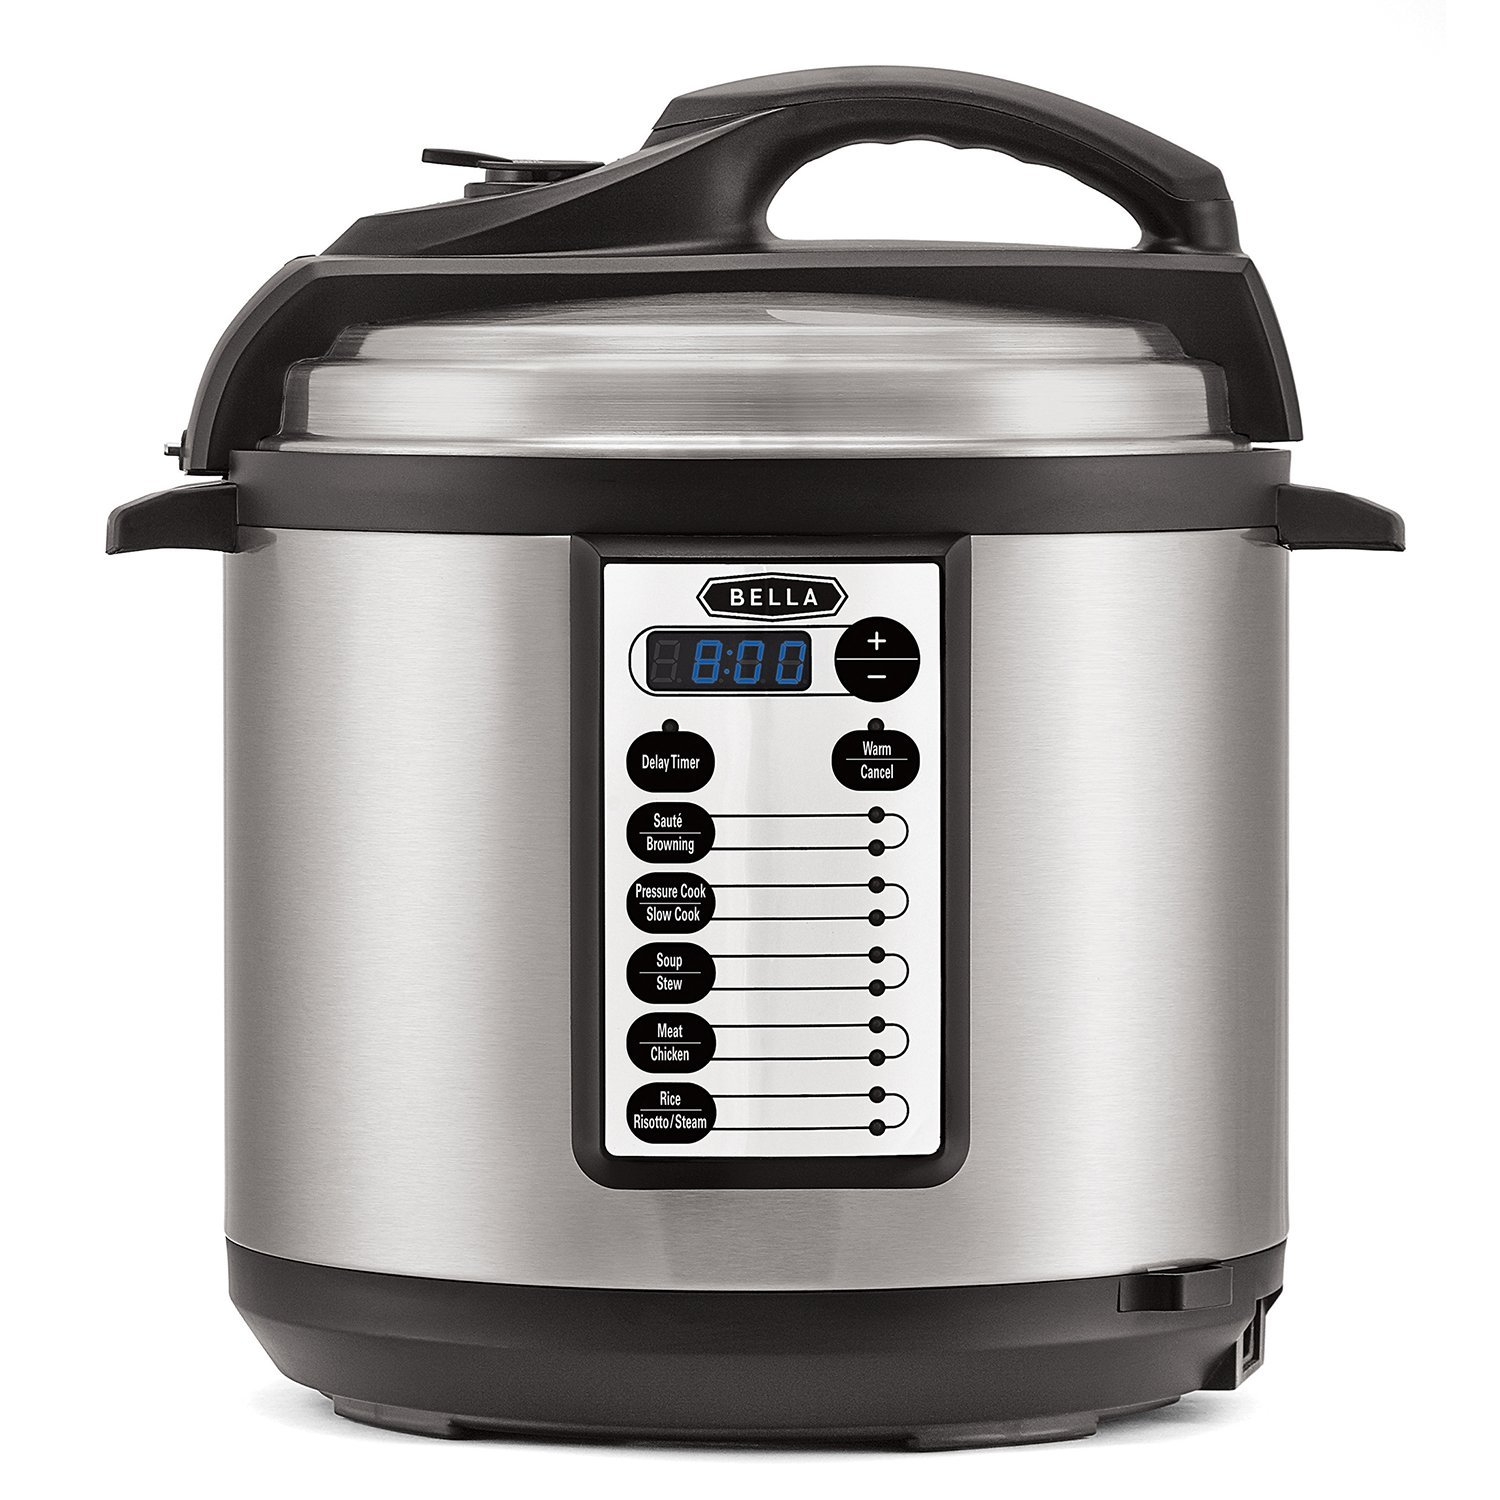 BELLA BLA14467 6 Qt 10-In-1 Multi-Use Programmable Pressure Cooker, Slow Cooker, Rice Cooker, Steamer, Saute, Warmer with Searing and Browning Feature, 1000 Watts by BELLA (Image #1)